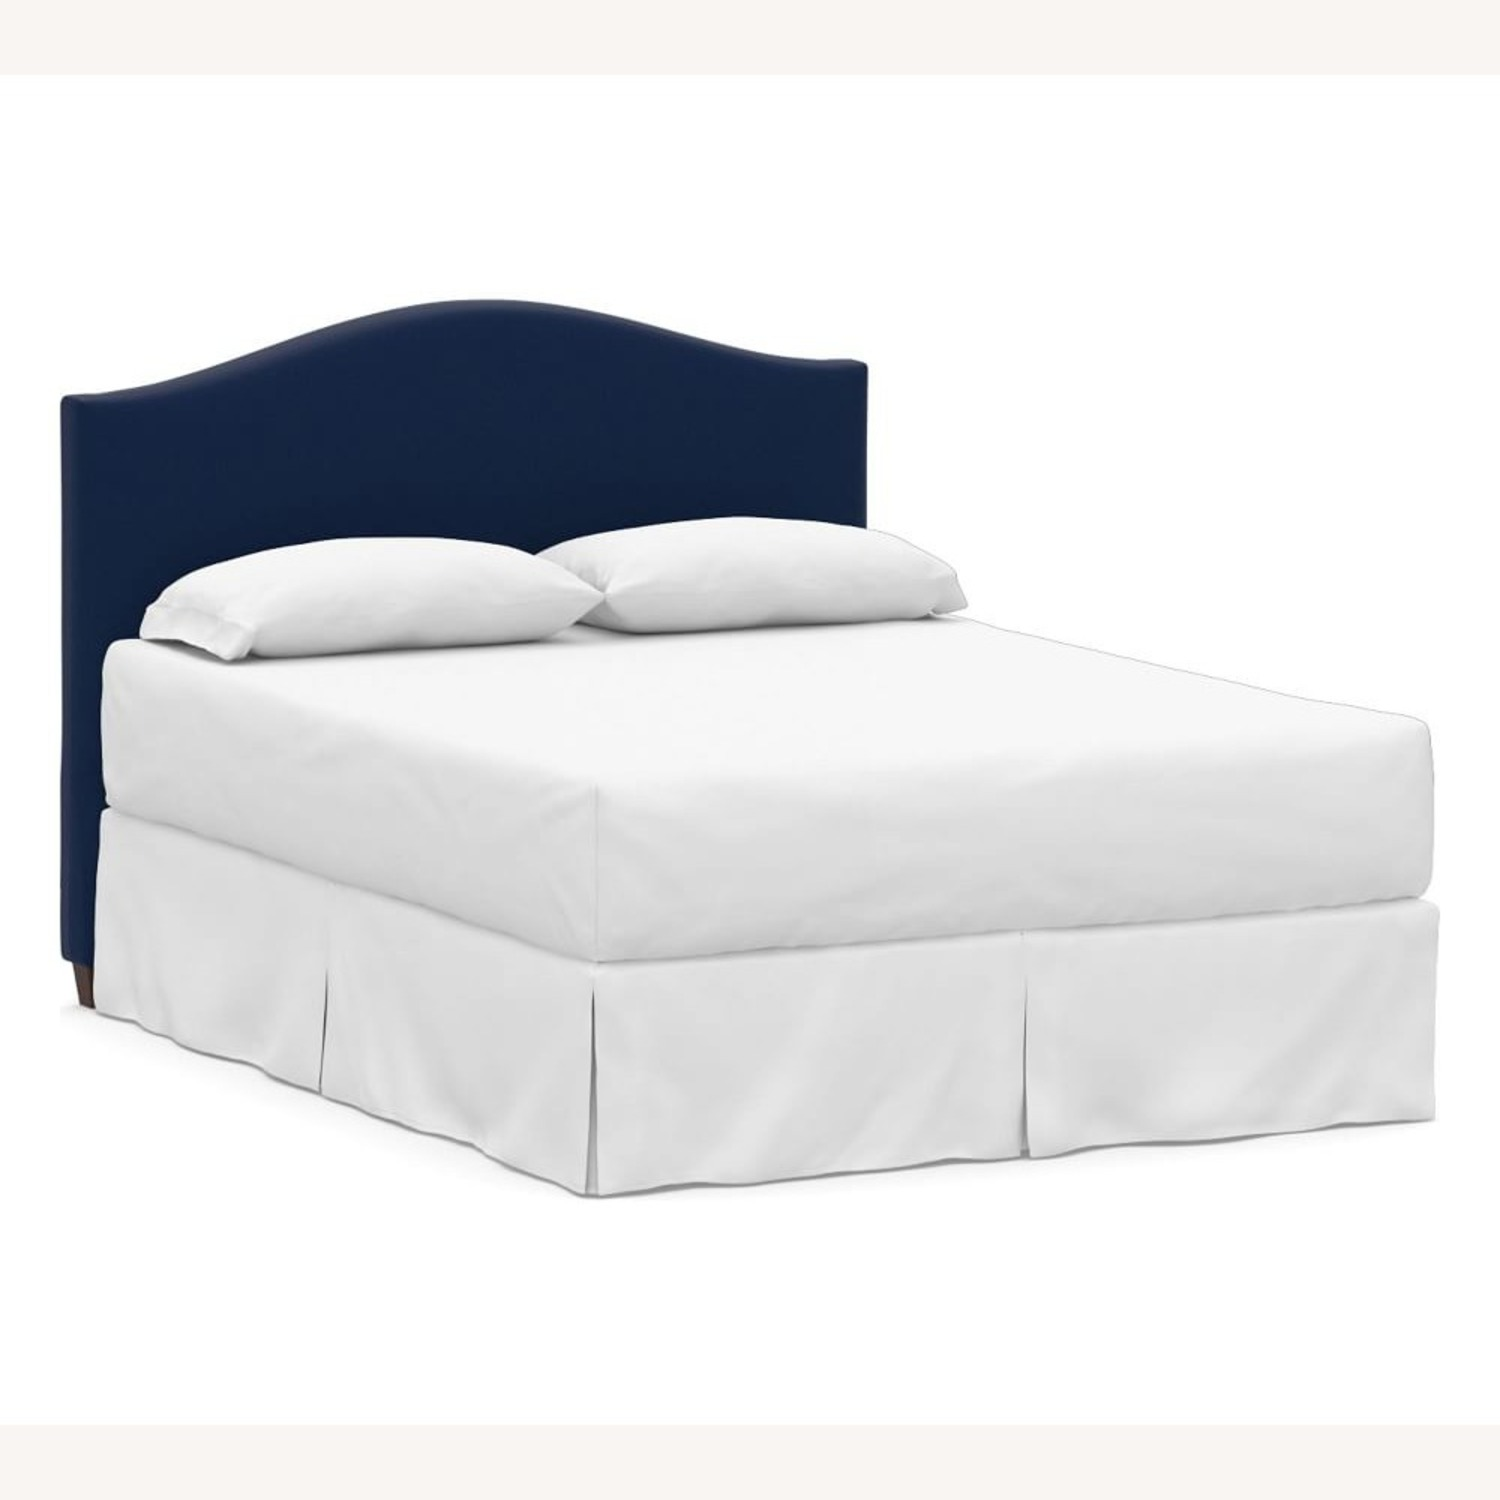 Pottery Barn Raleigh Curved Low Headboard - image-3